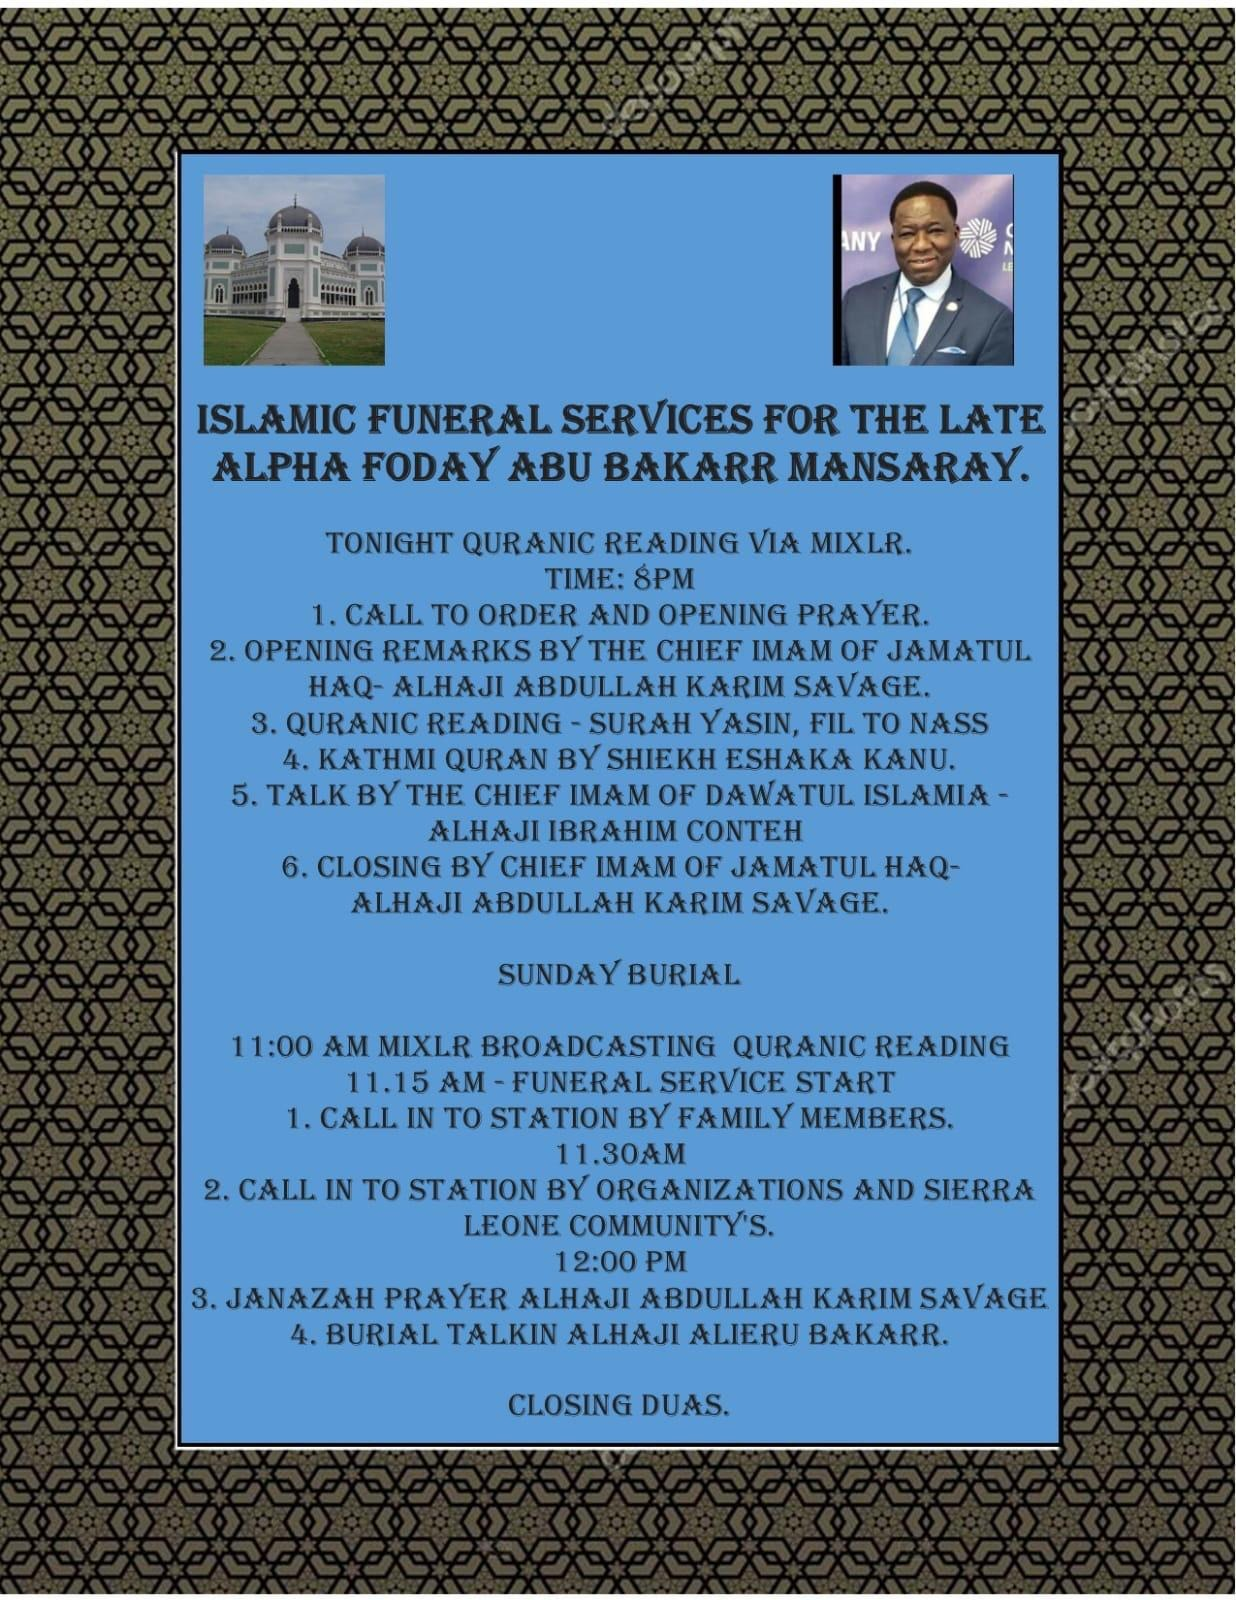 Islamic Funeral Services For the Late Alpha Foday